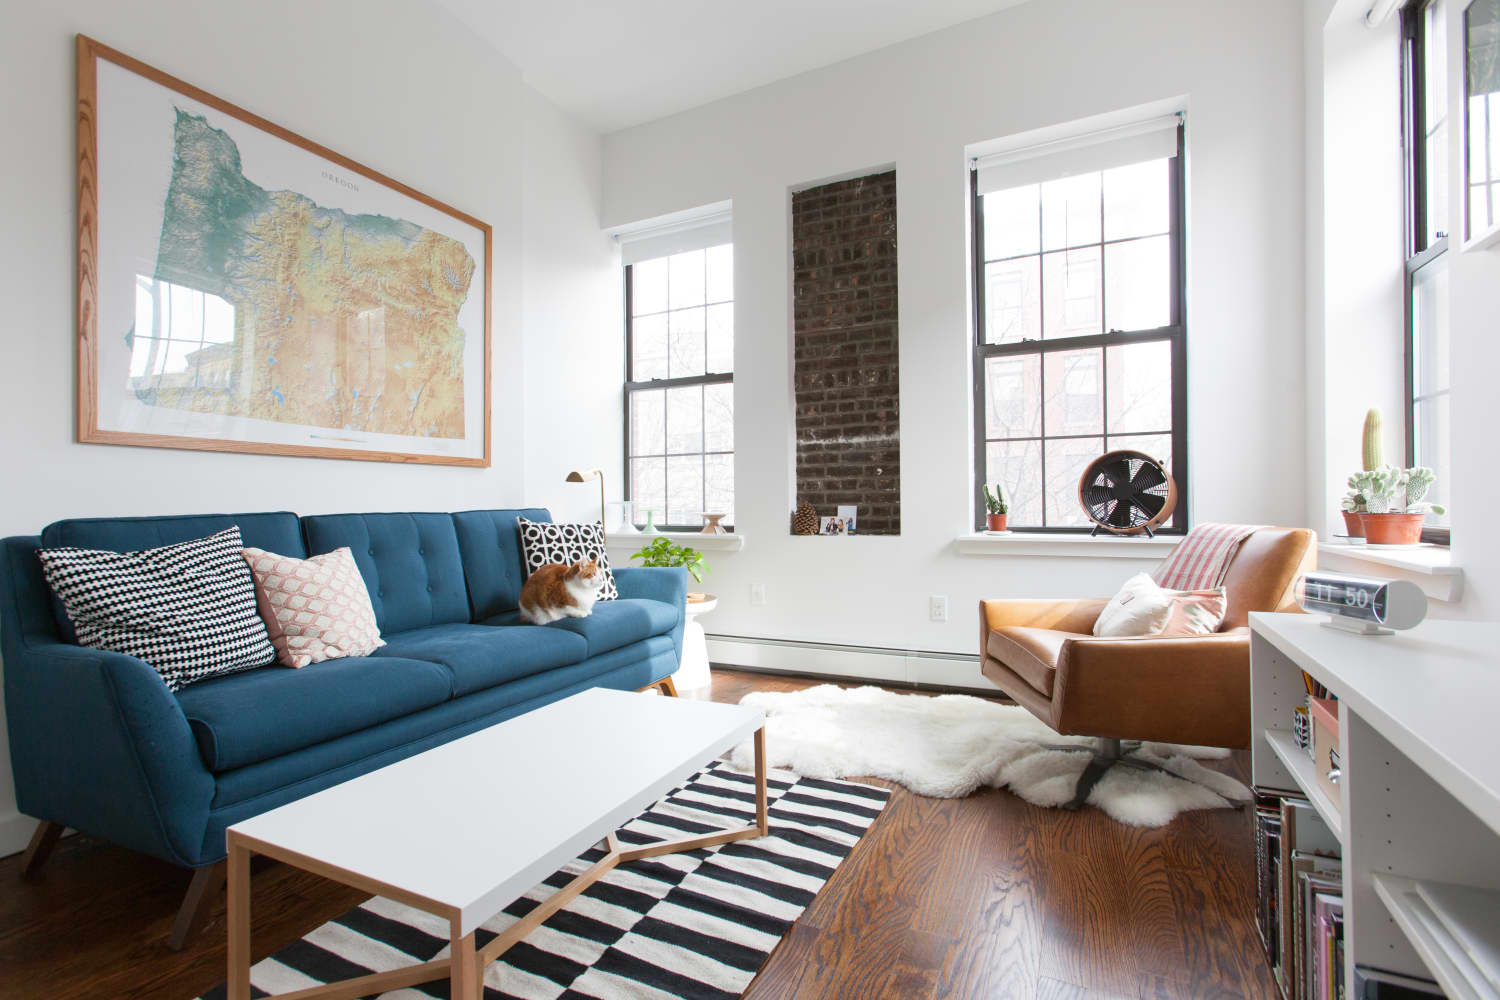 Living Room Layout Mistakes to Avoid While Decorating | Apartment ...